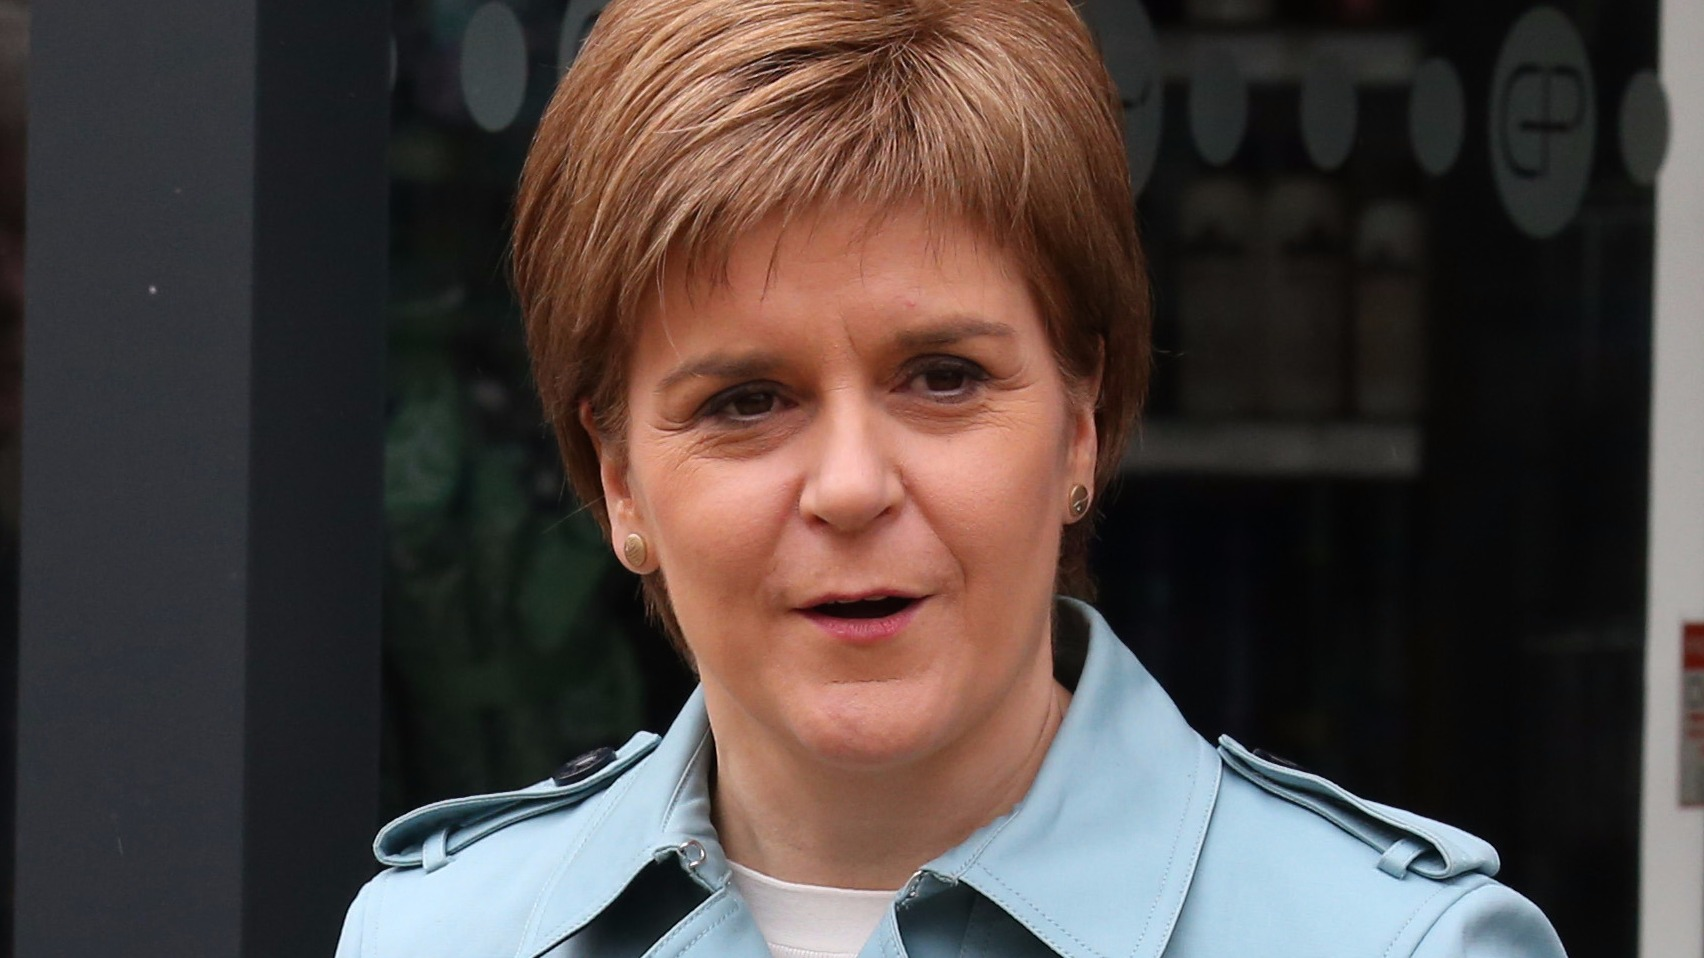 Sturgeon publishes tax return as PM faces more scrutiny